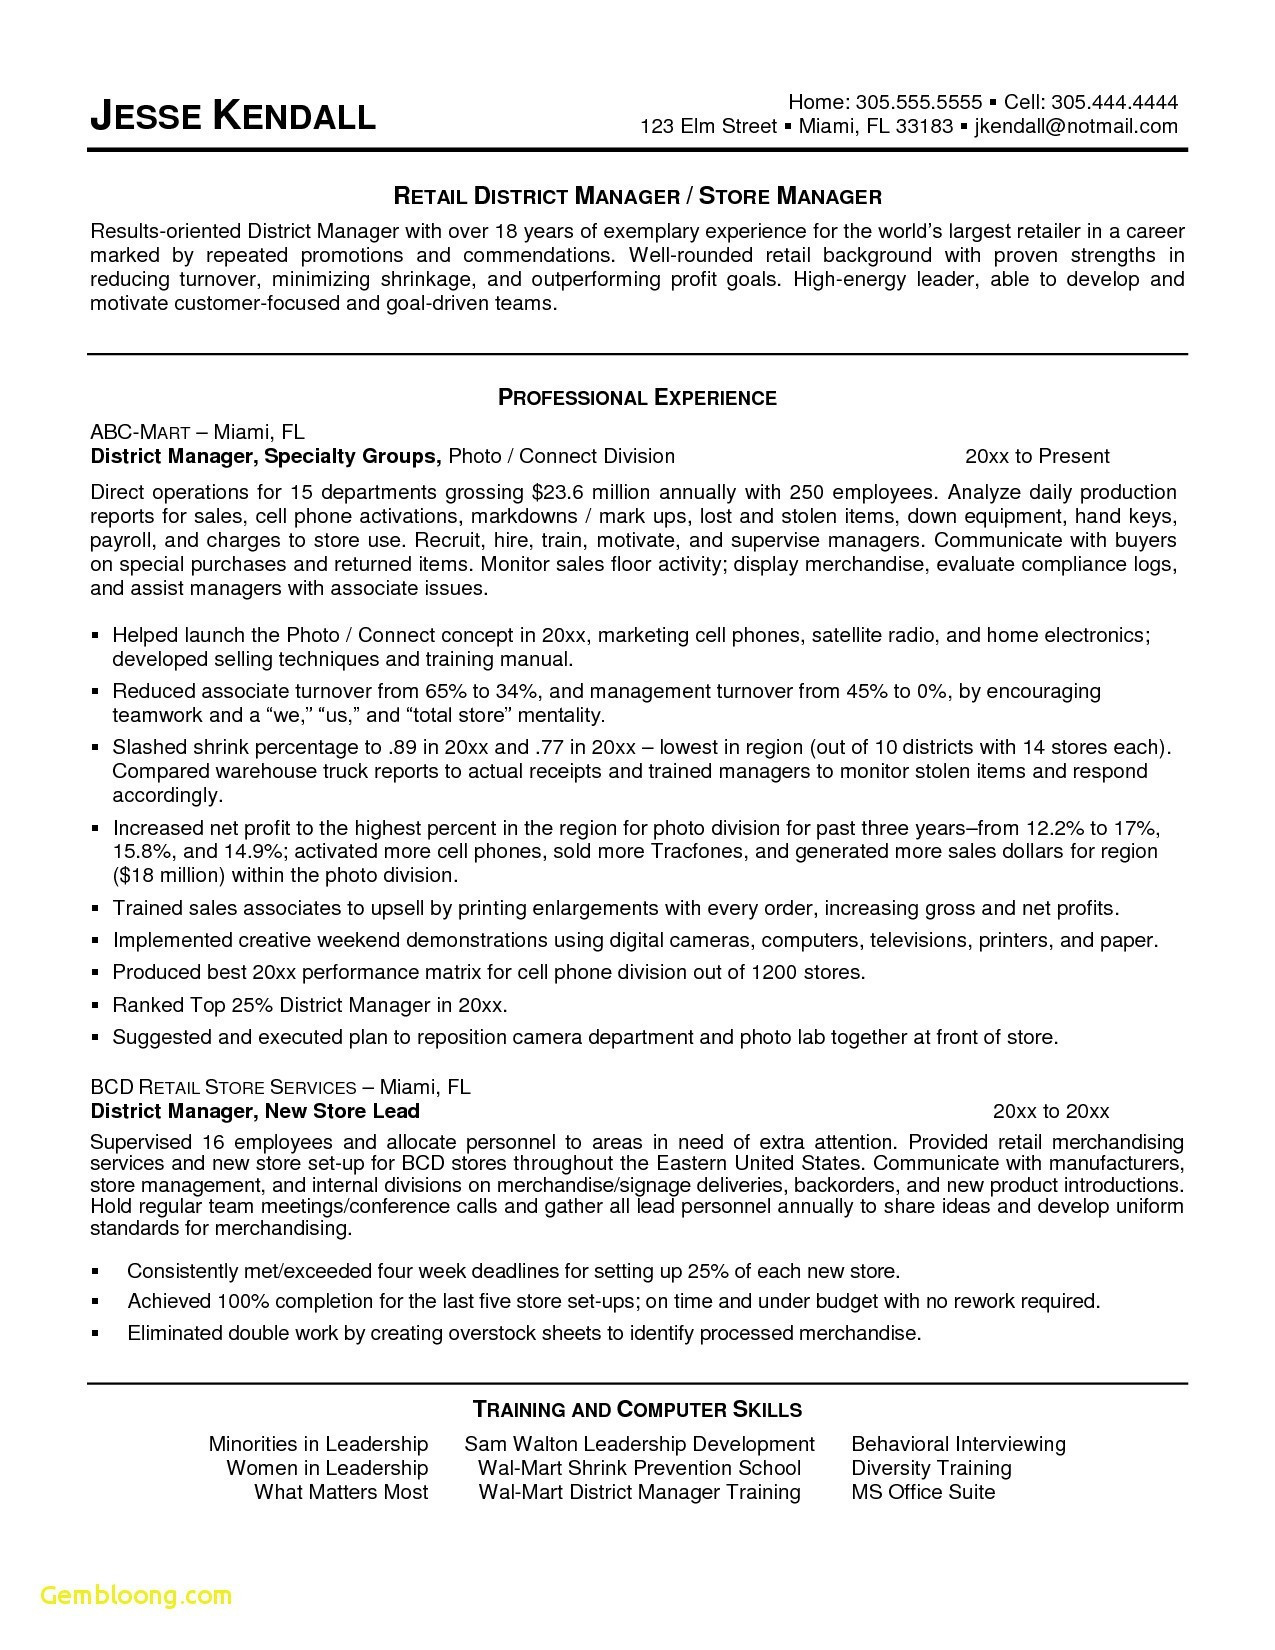 Warehouse Manager Resume Sample - Warehouse Supervisor Sample Resume Elegant Warehouse Manager Resume